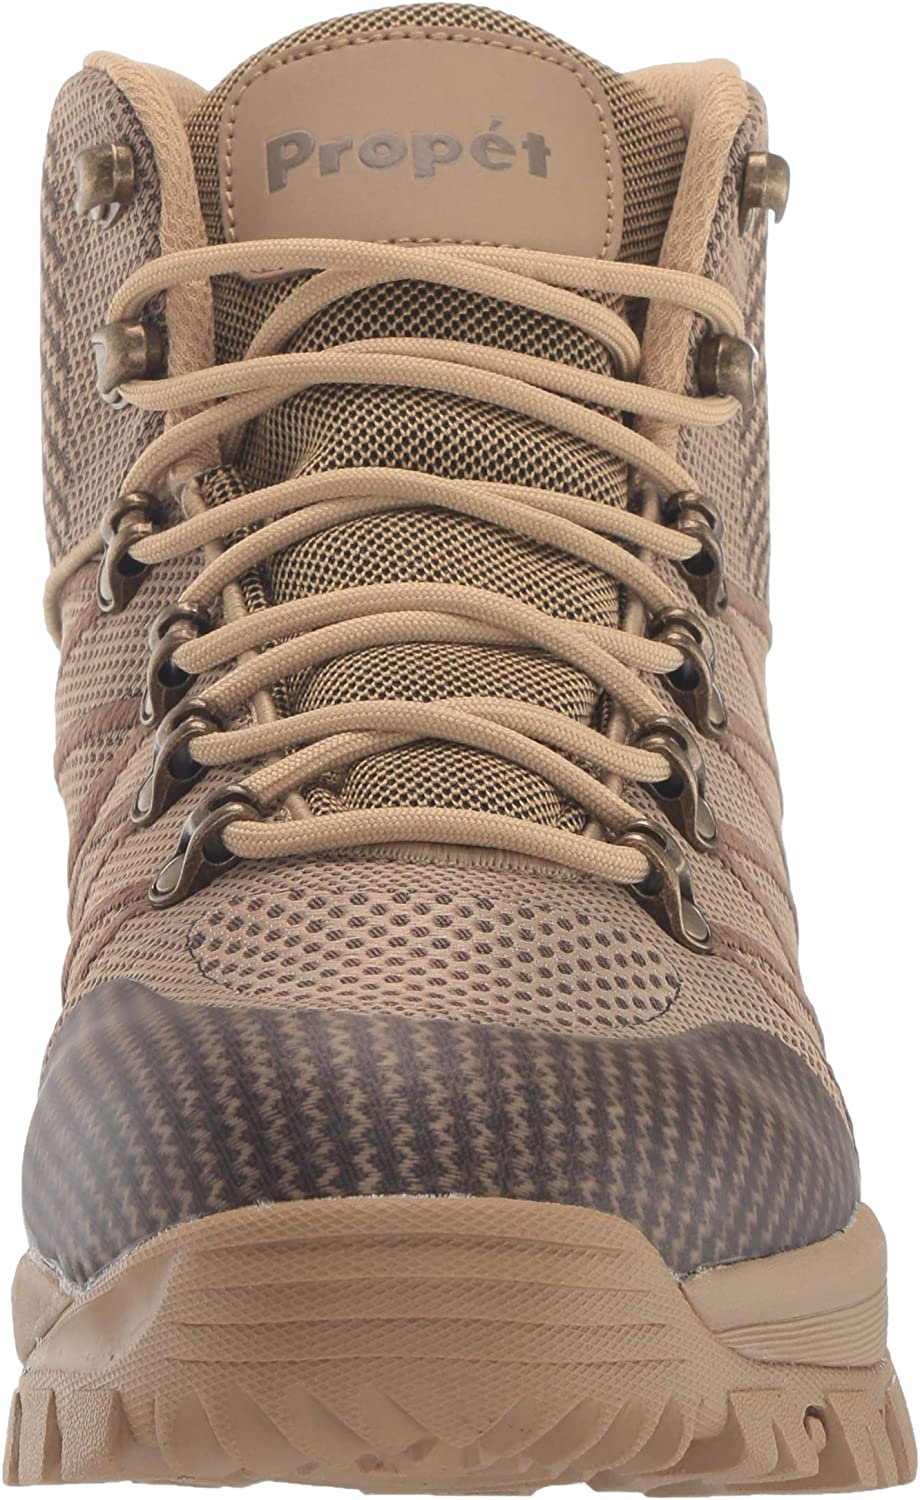 Prop t Men's Traverse Hiking Boot